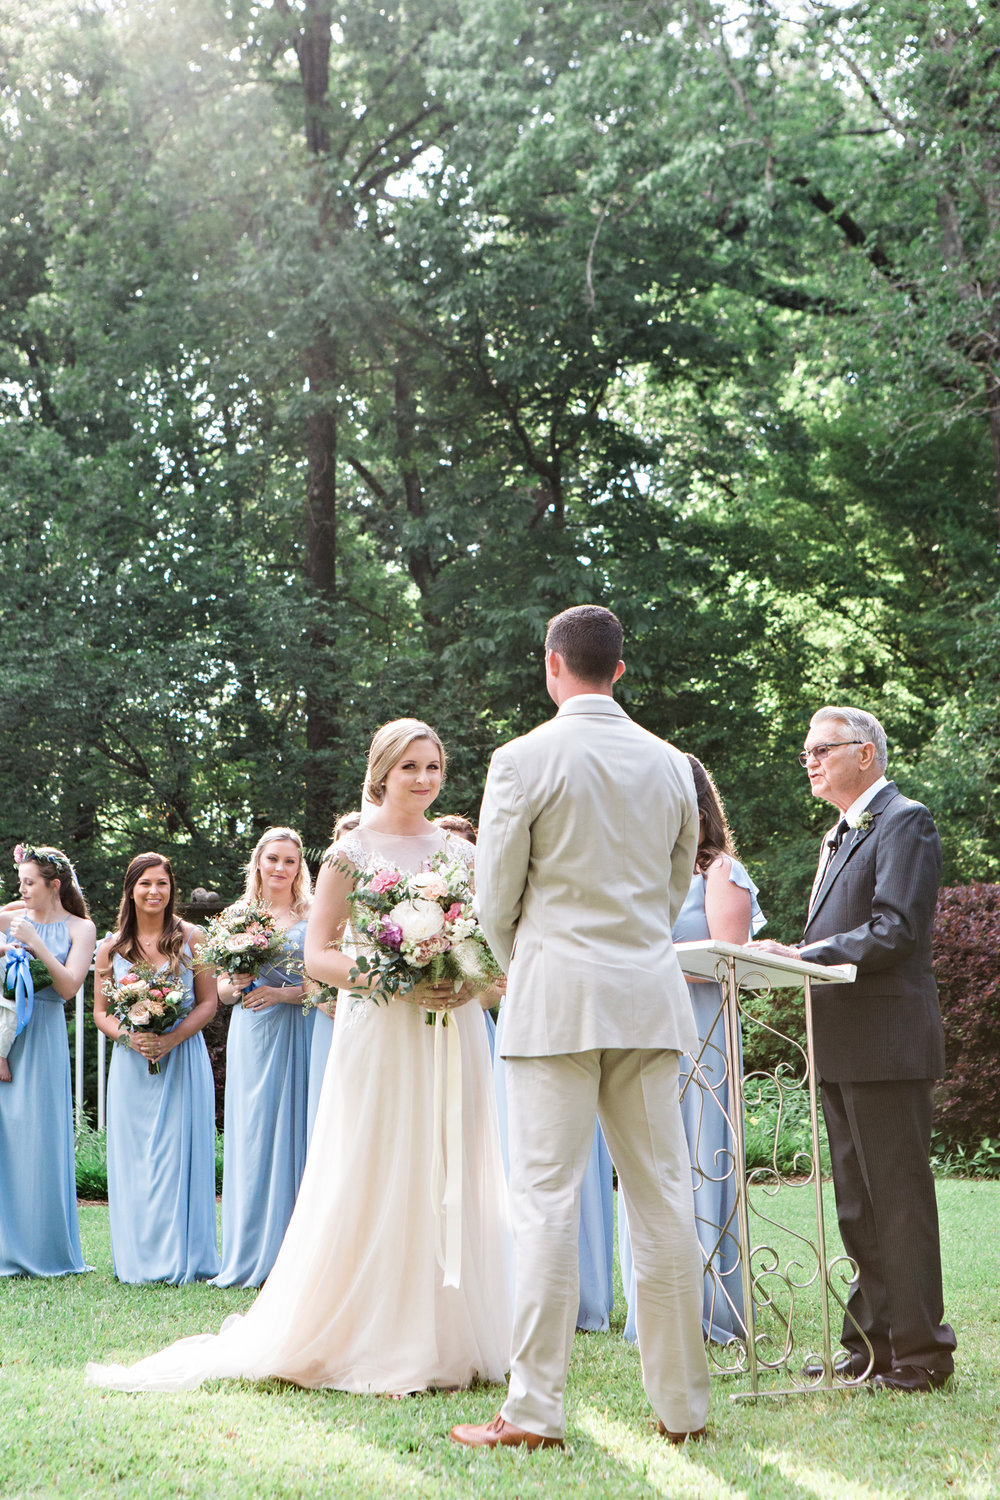 Matty-Drollette-Photography-Alabama-Weddings-Sara and Logan-137.jpg